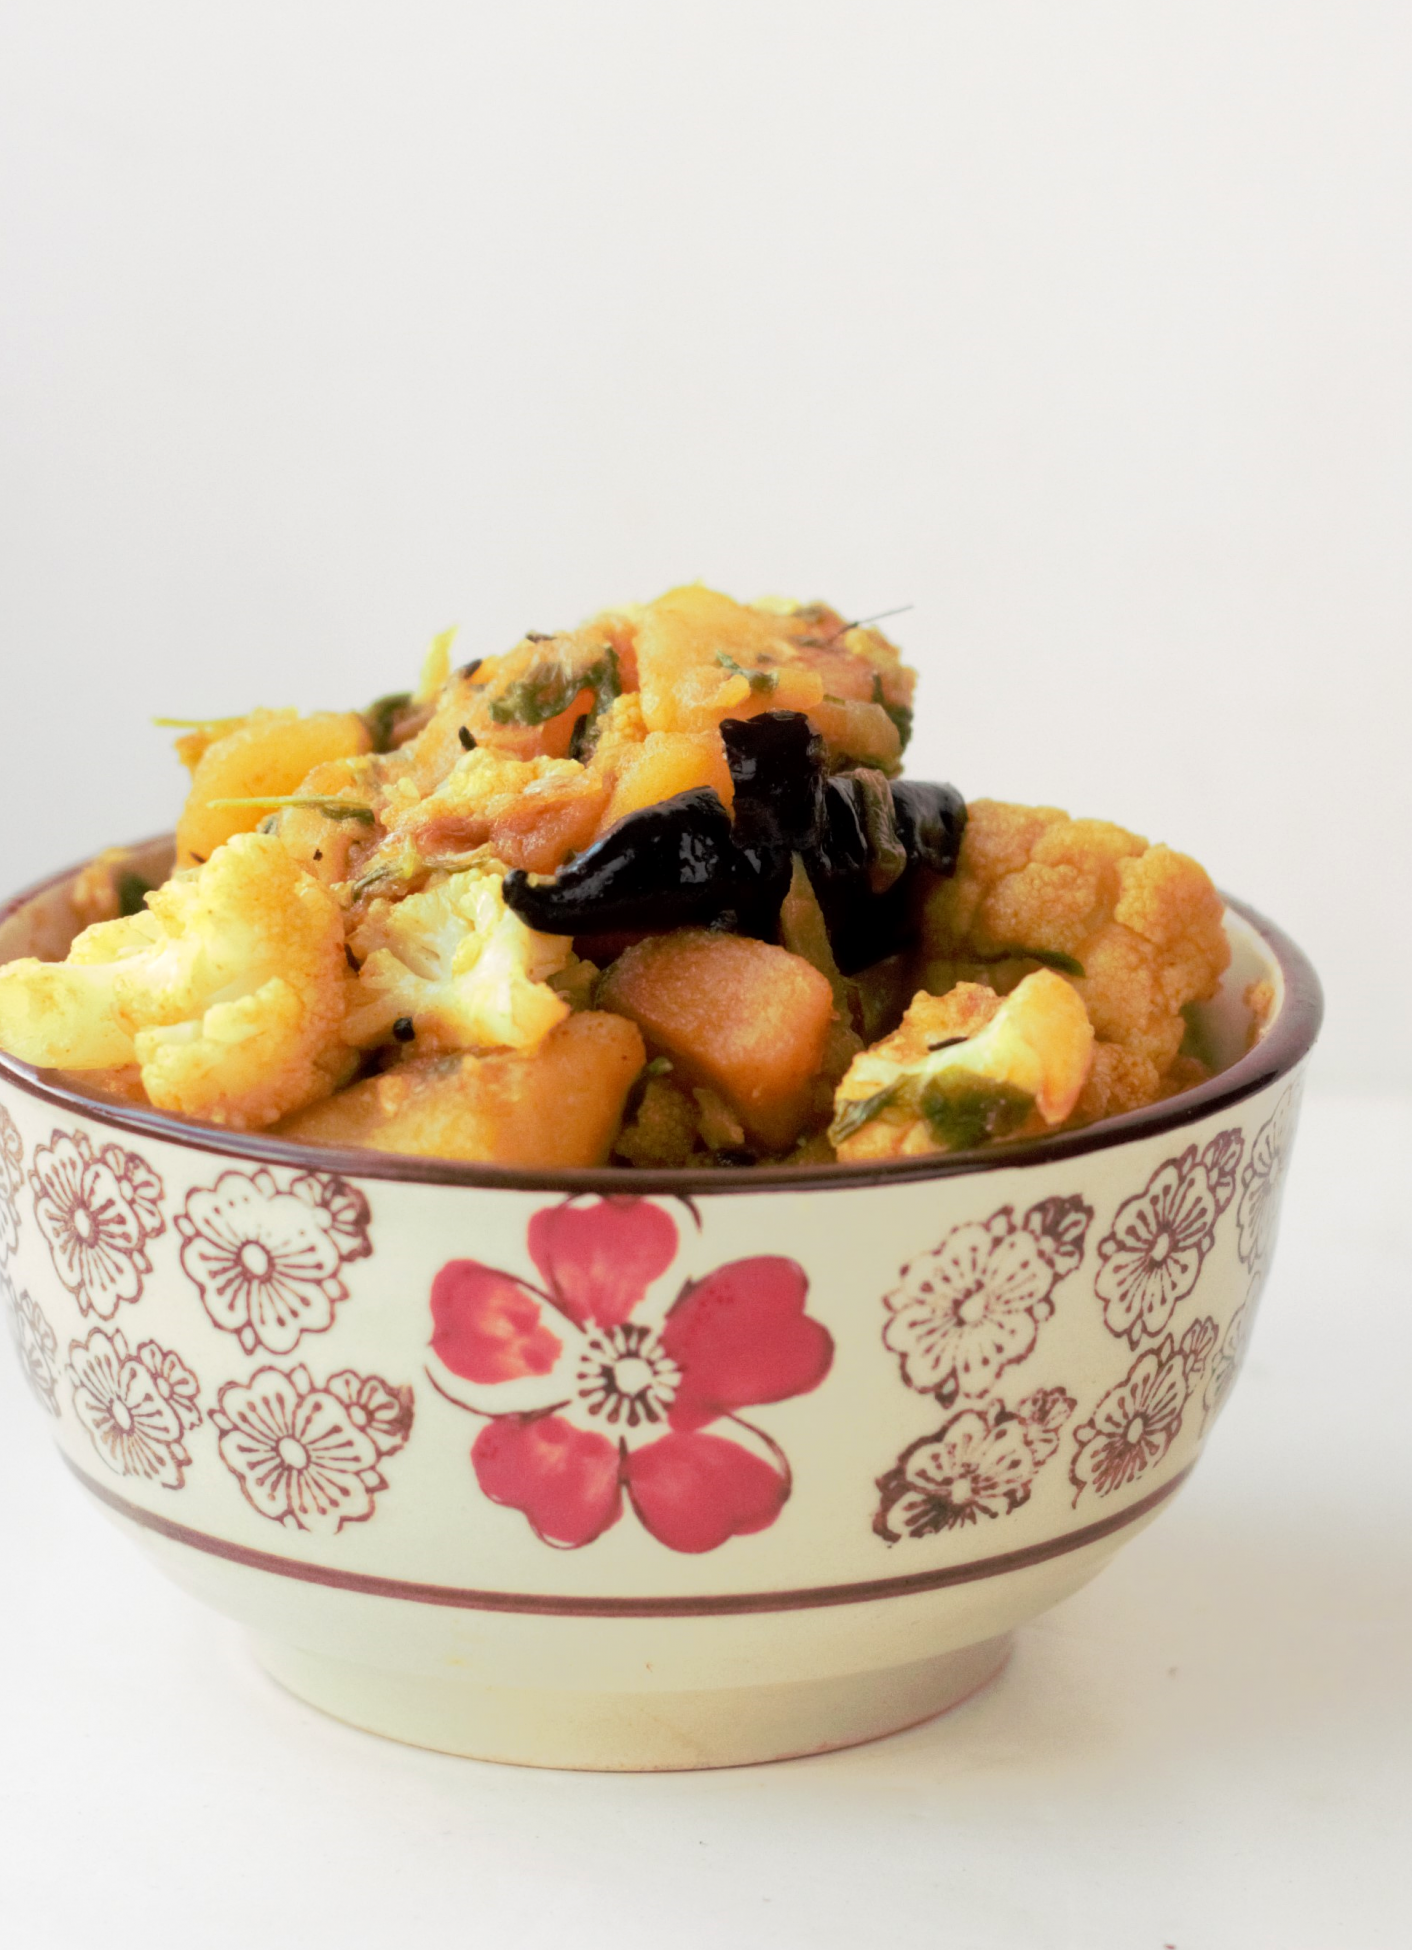 Aloo Gobi Methi Sabzi, Dry is a tasty combination of Potato and Cauliflower with fenugreek leaves which is stir fried with minimal oil. A healthy and tasty dish which tastes equally good with roti or rice.